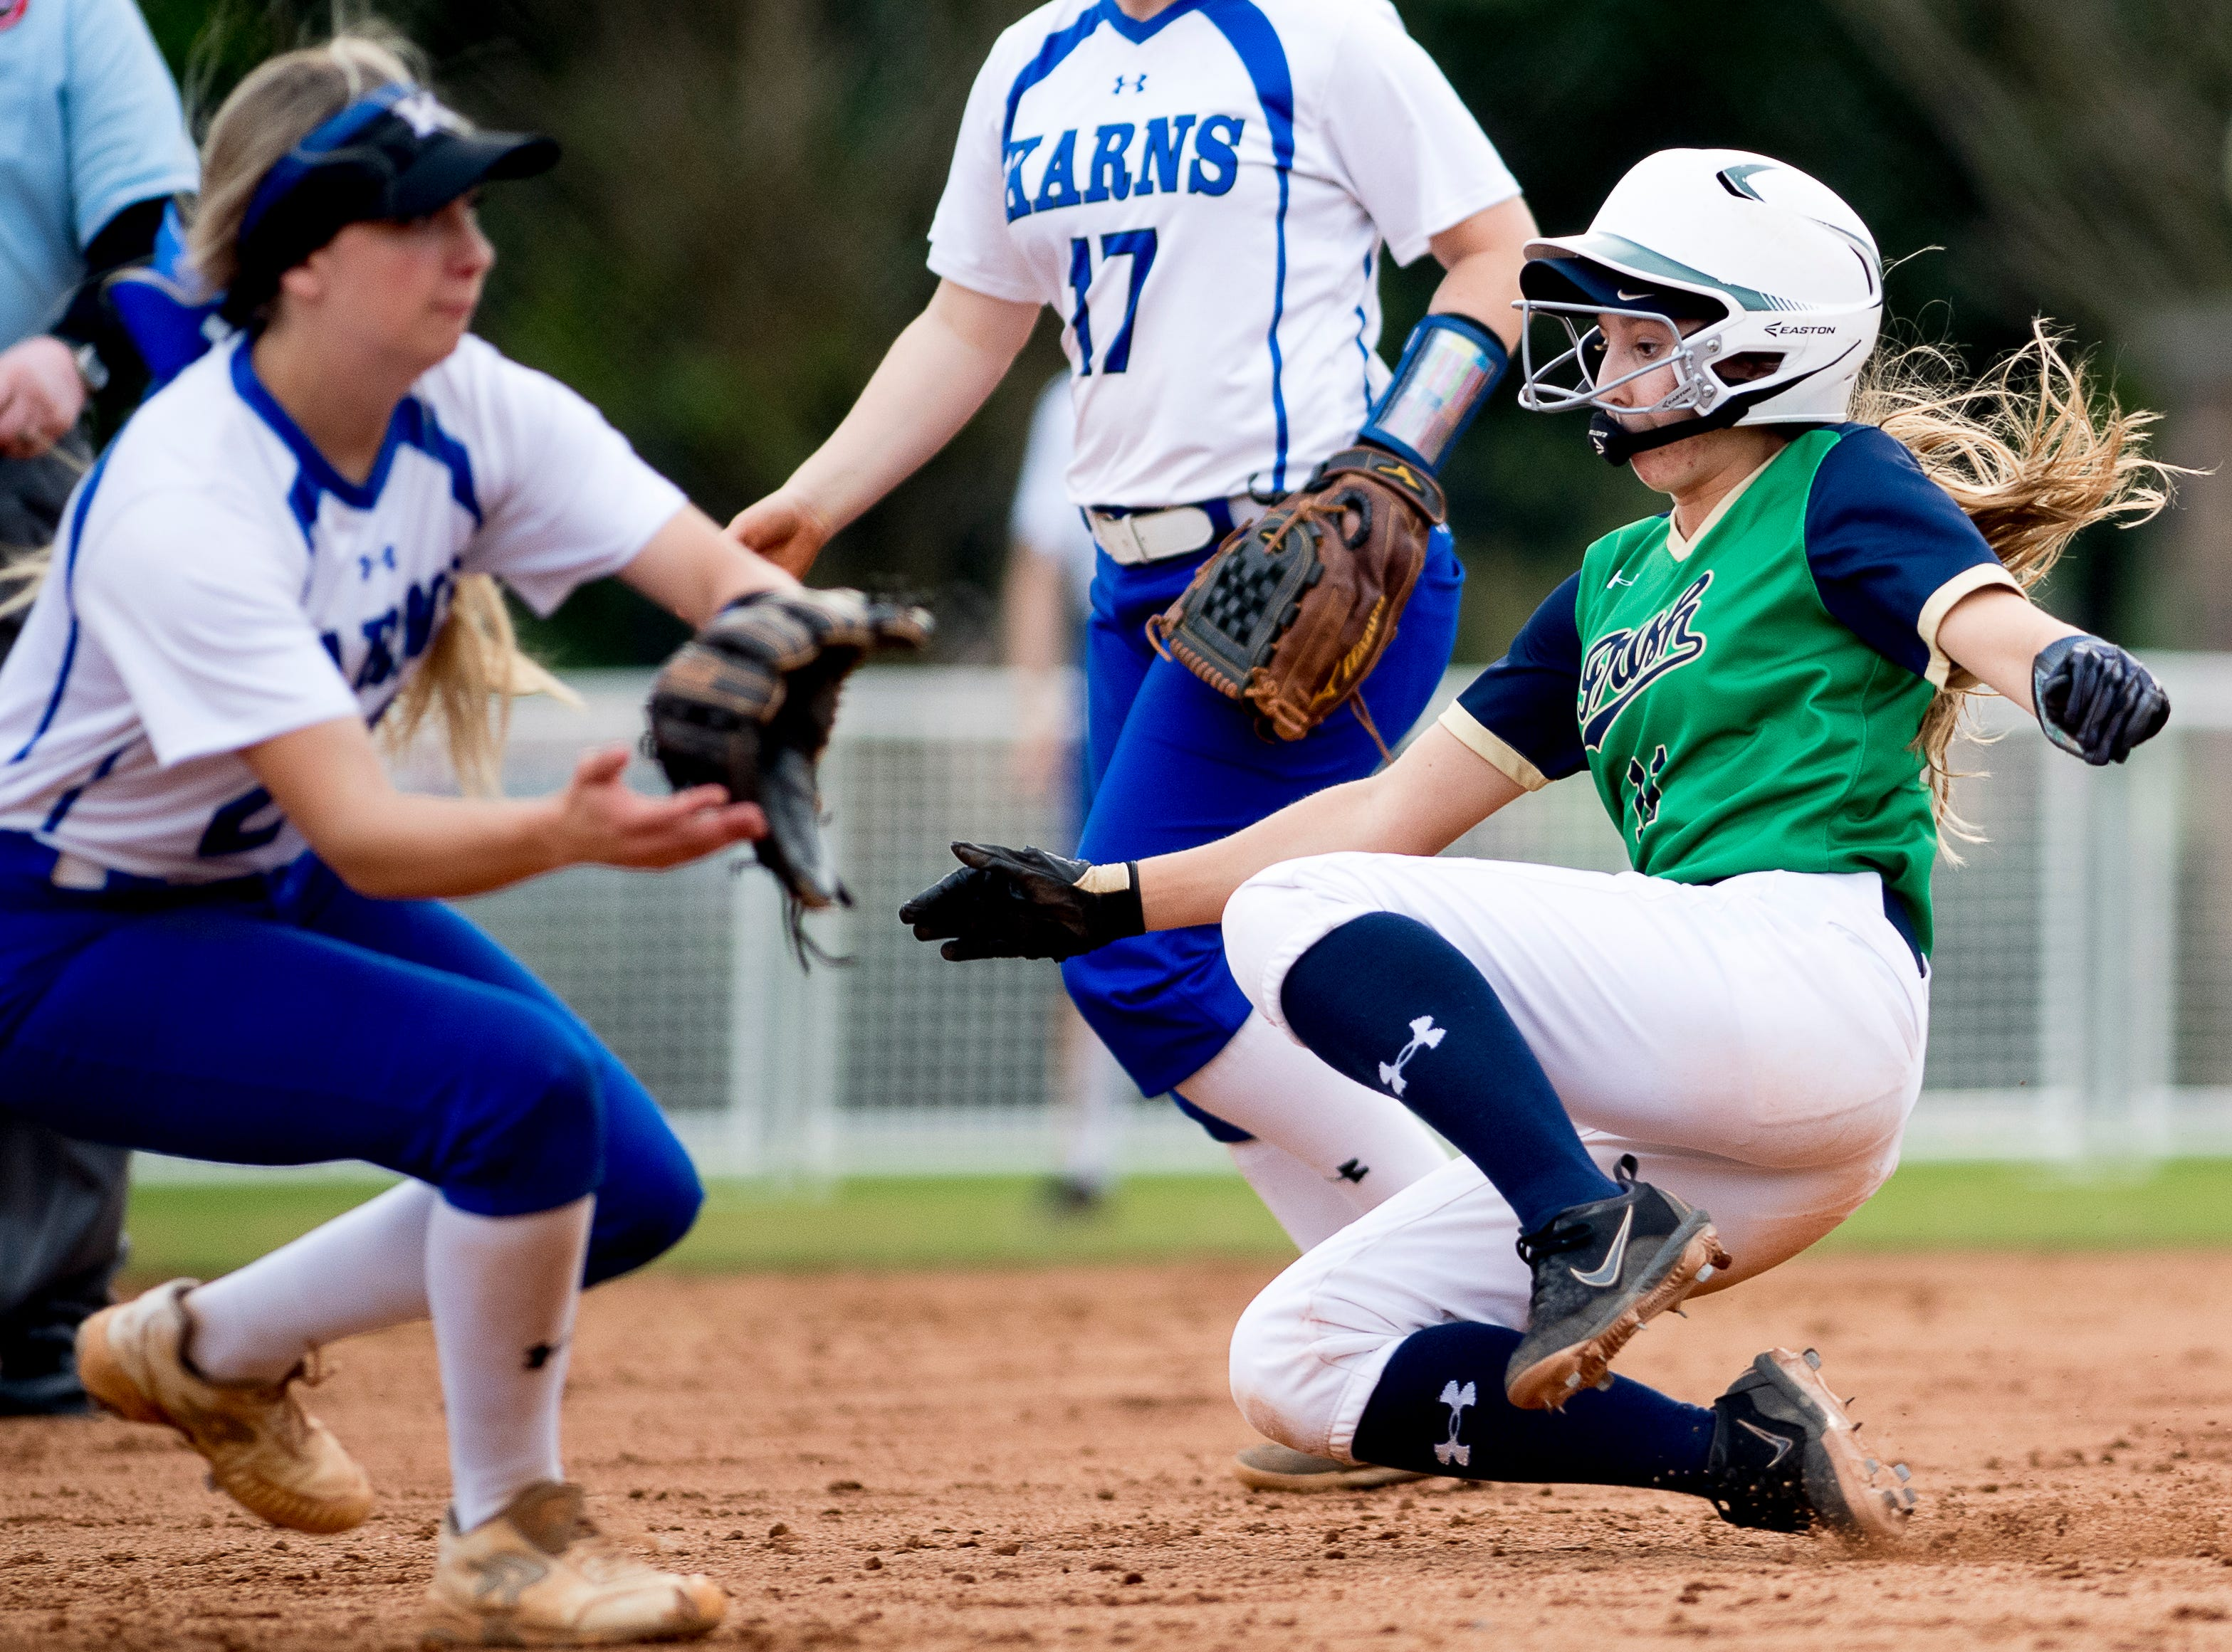 Catholic's Samantha Kaczmarek (11) slides into second as Karns' Jennifer Bezarek (27) catches the ball during a softball game between Catholic and Karns at Caswell Park in Knoxville, Tennessee on Friday, April 12, 2019.